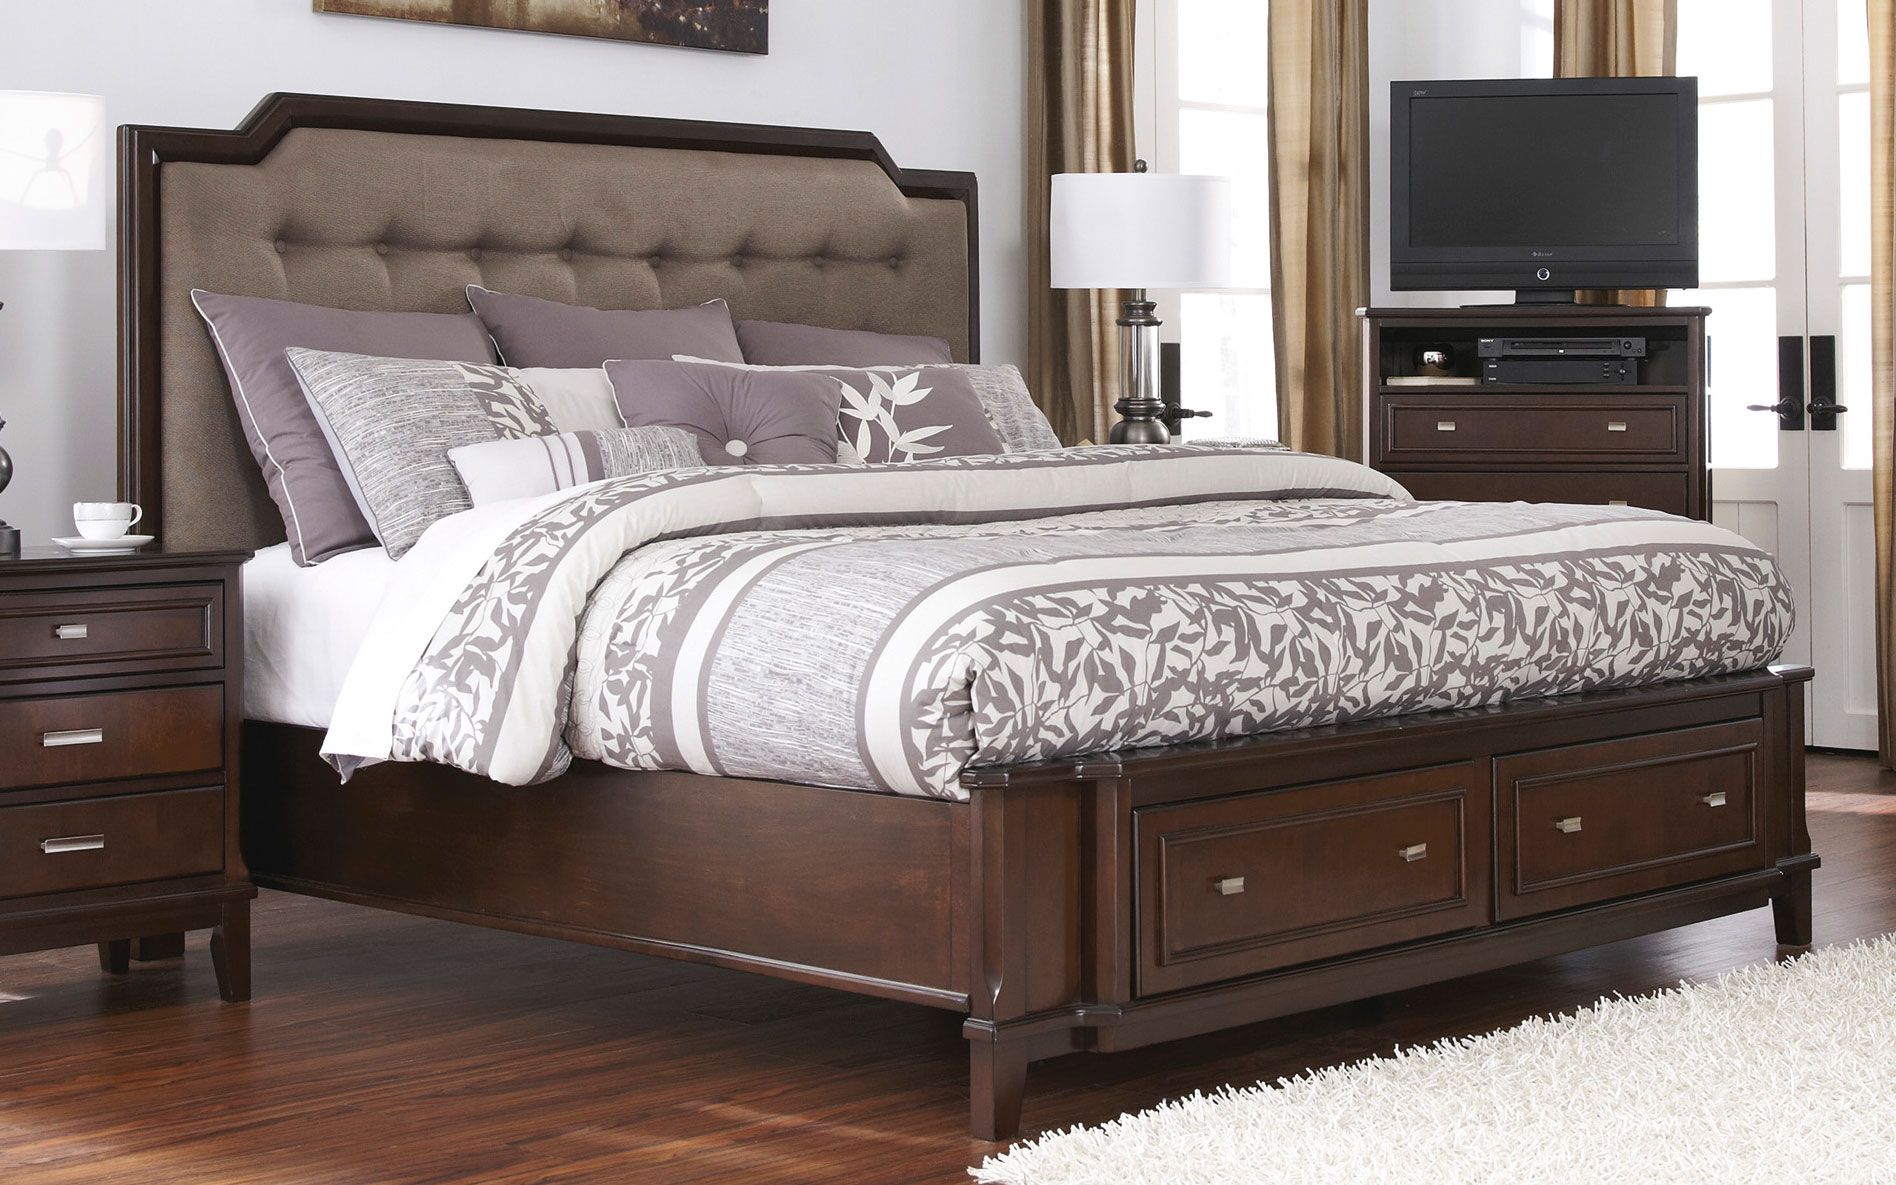 King-Size-Bed-Set-691